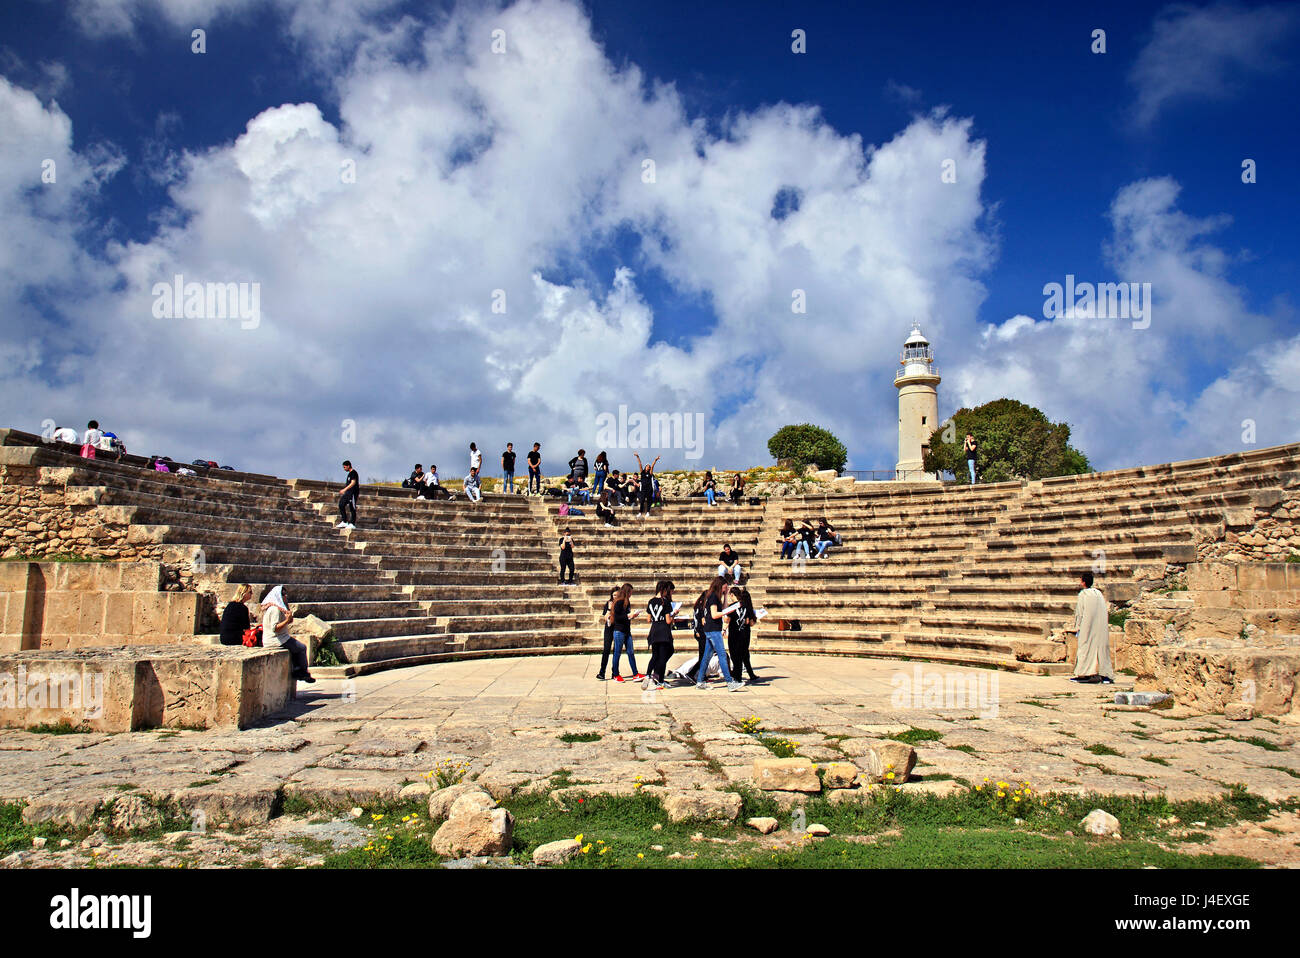 Students, 'rehearsing' at the Roman Odeon in the Archaeological Park of Paphos (UNESCO World Heritage Site) - Stock Image